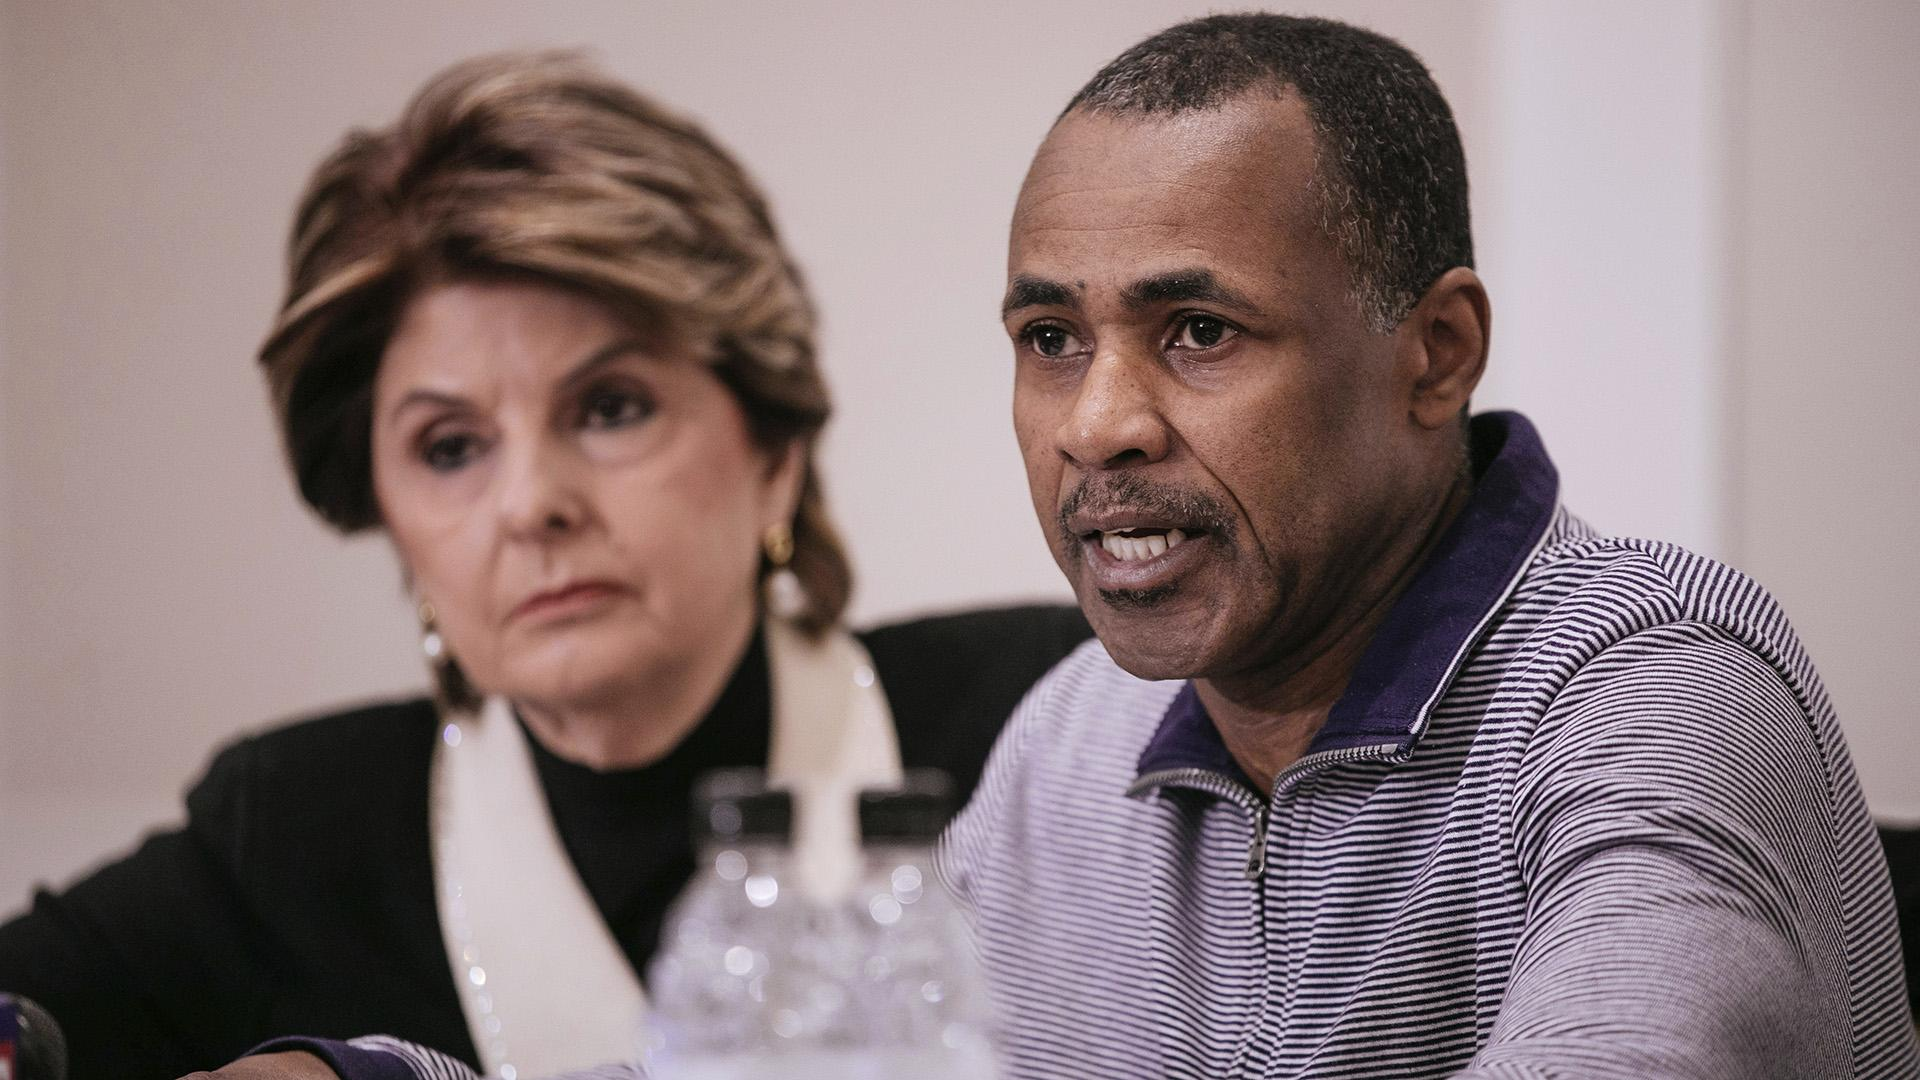 Gary Dennis, seated with lawyer Gloria Allred, speaks during a Sunday, March 10, 2019 press conference announcing a videotape said to present further evidence of wrongdoing by recording artist R. Kelly. Dennis said the tape, which he found at his home in Pennsylvania, shows R. Kelly sexually abusing more than one underage girl. (AP Photo / Kevin Hagen)